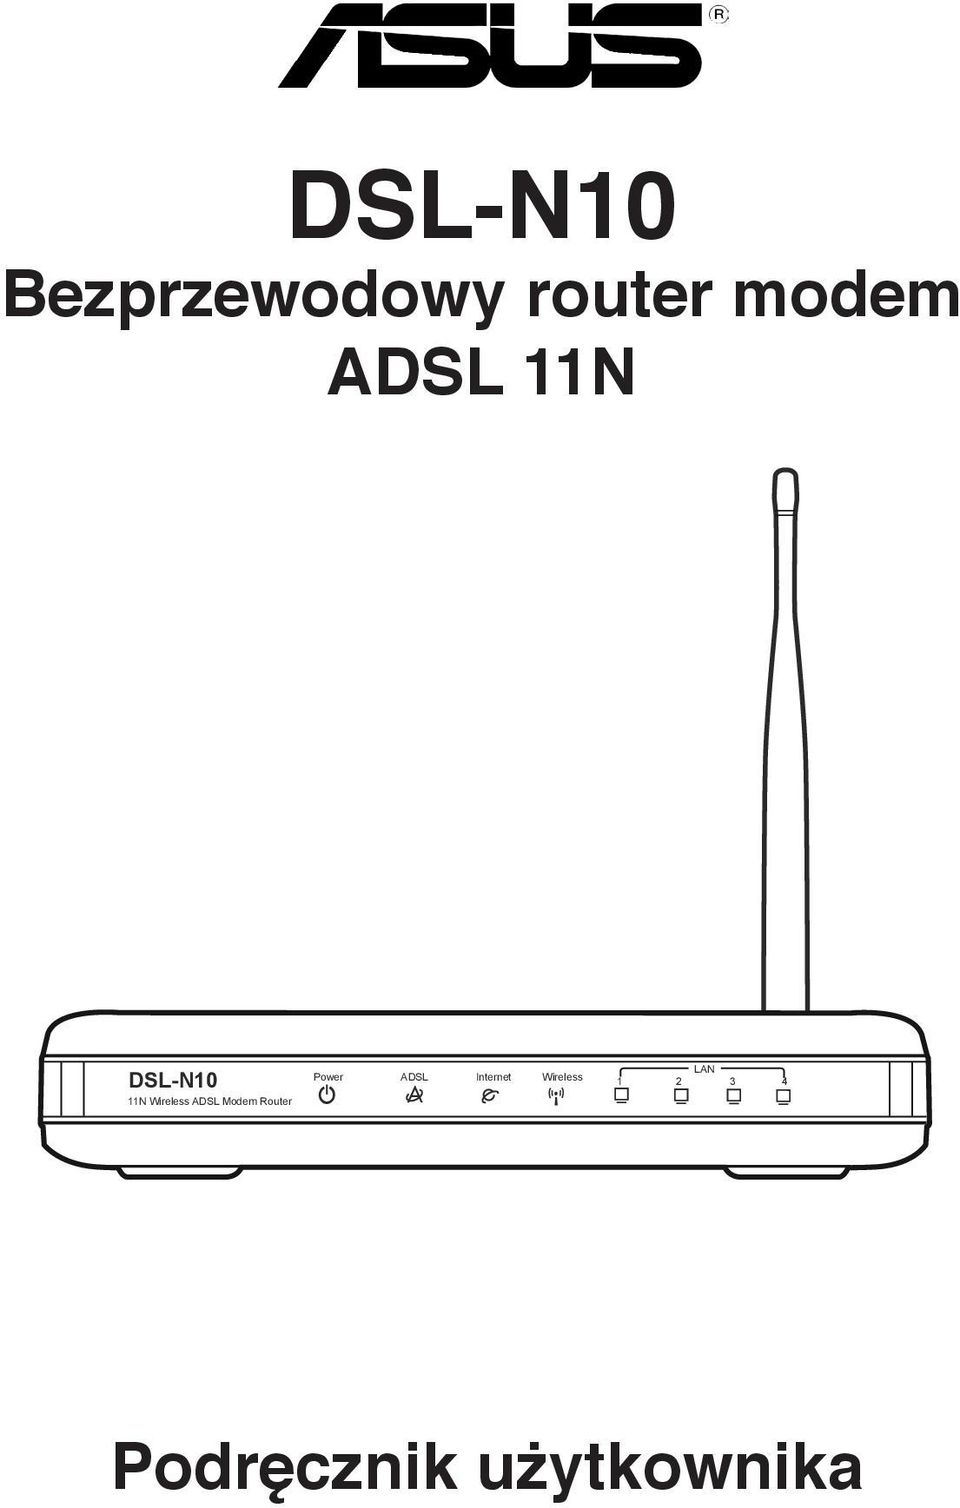 Wireless LAN 1 2 3 4 11N Wireless